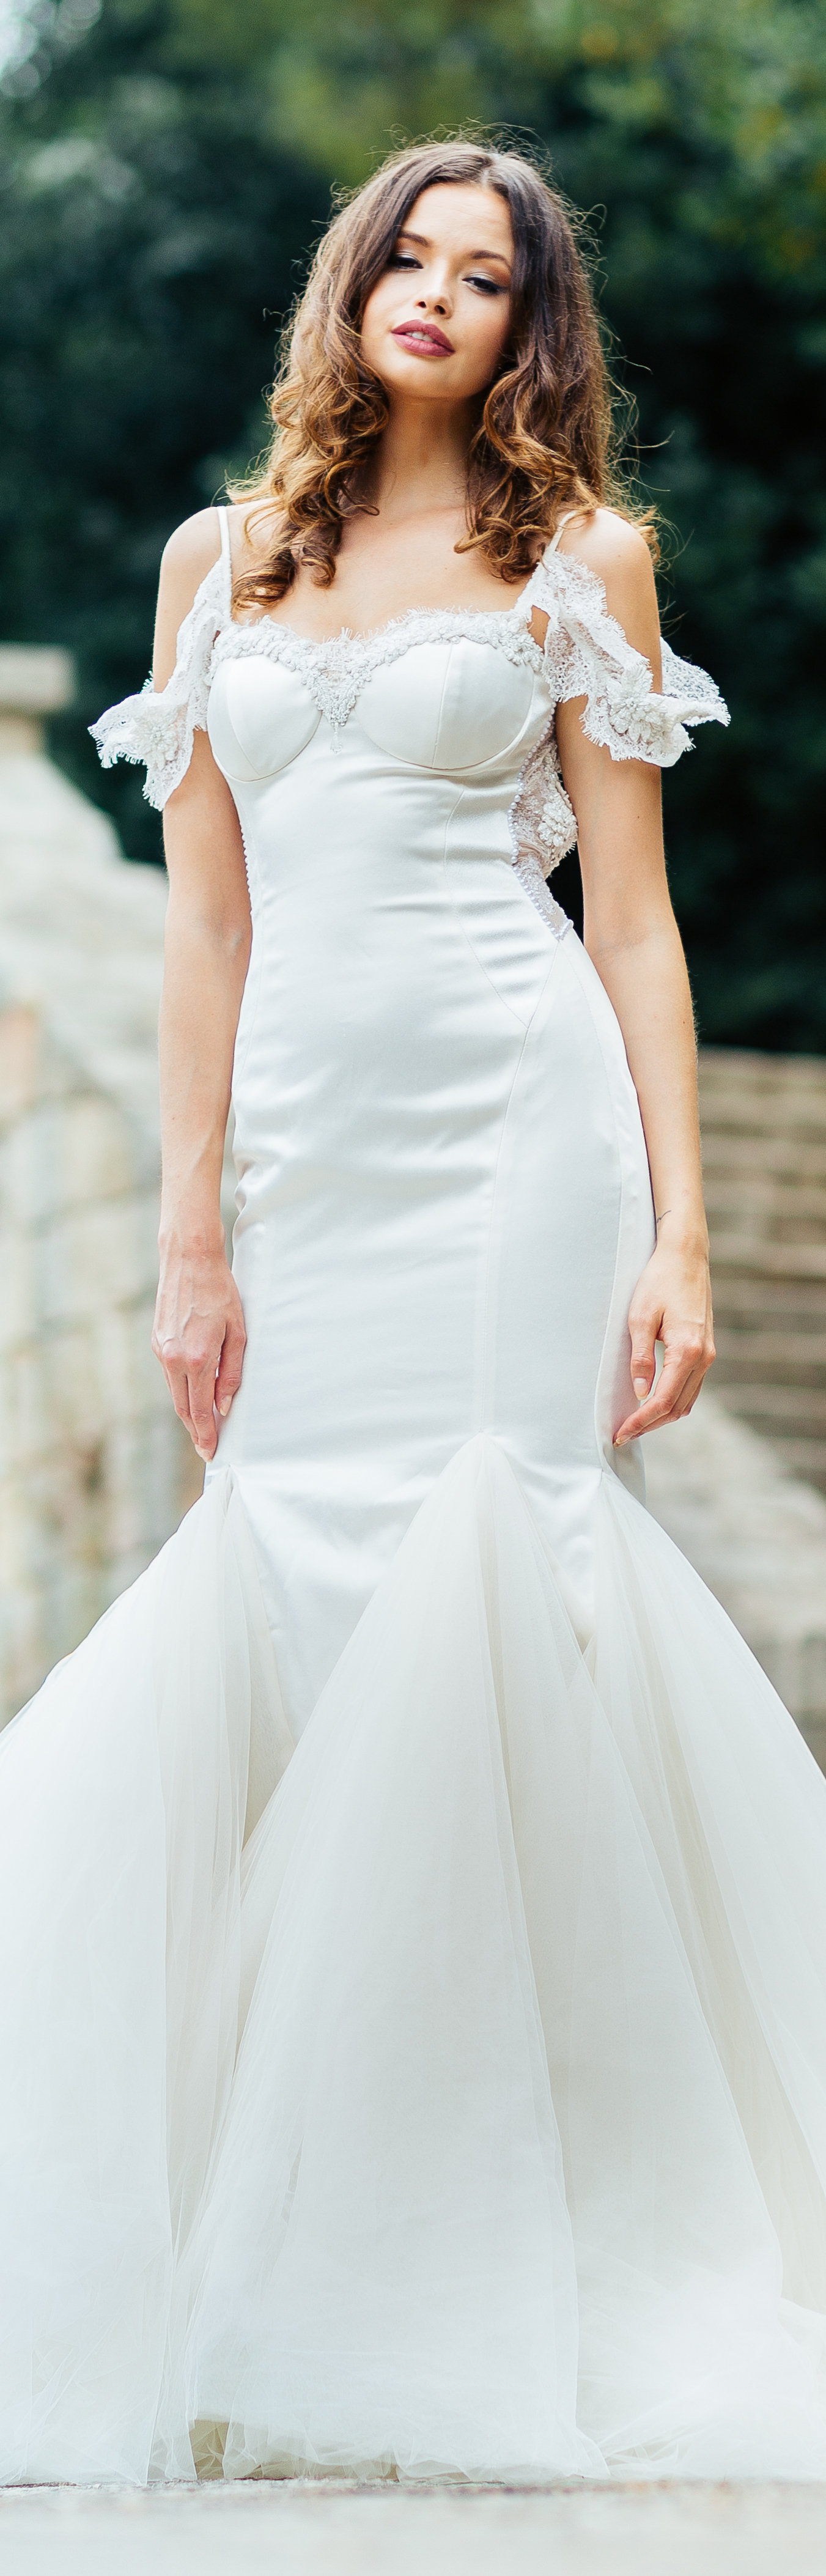 Diana exquisite wedding gowns pinterest tulle skirts galia